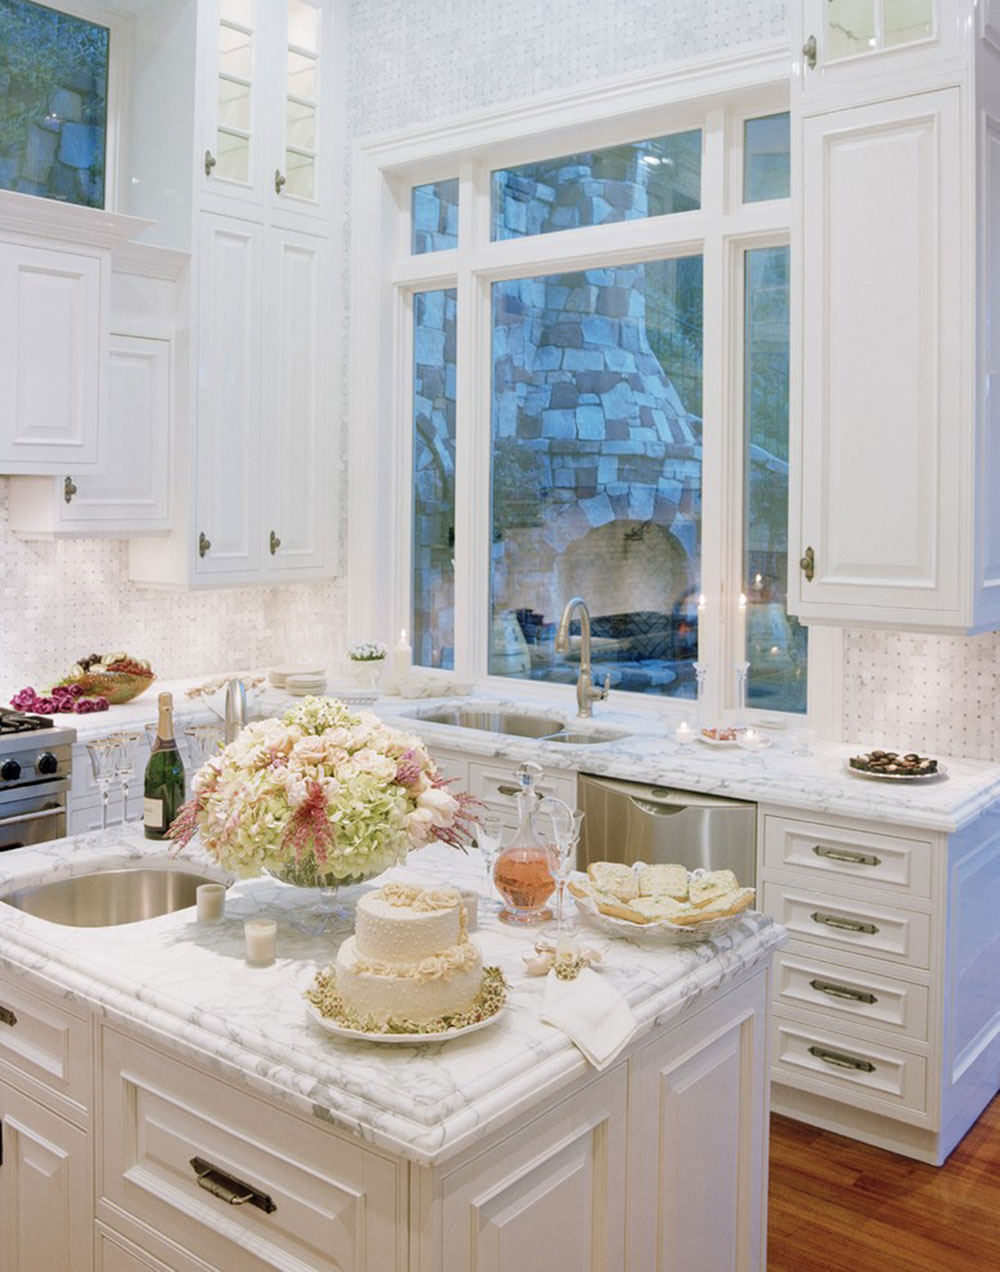 What Is Quartz Countertops Sparkling White Quartz Countertop For Your Kitchen Design